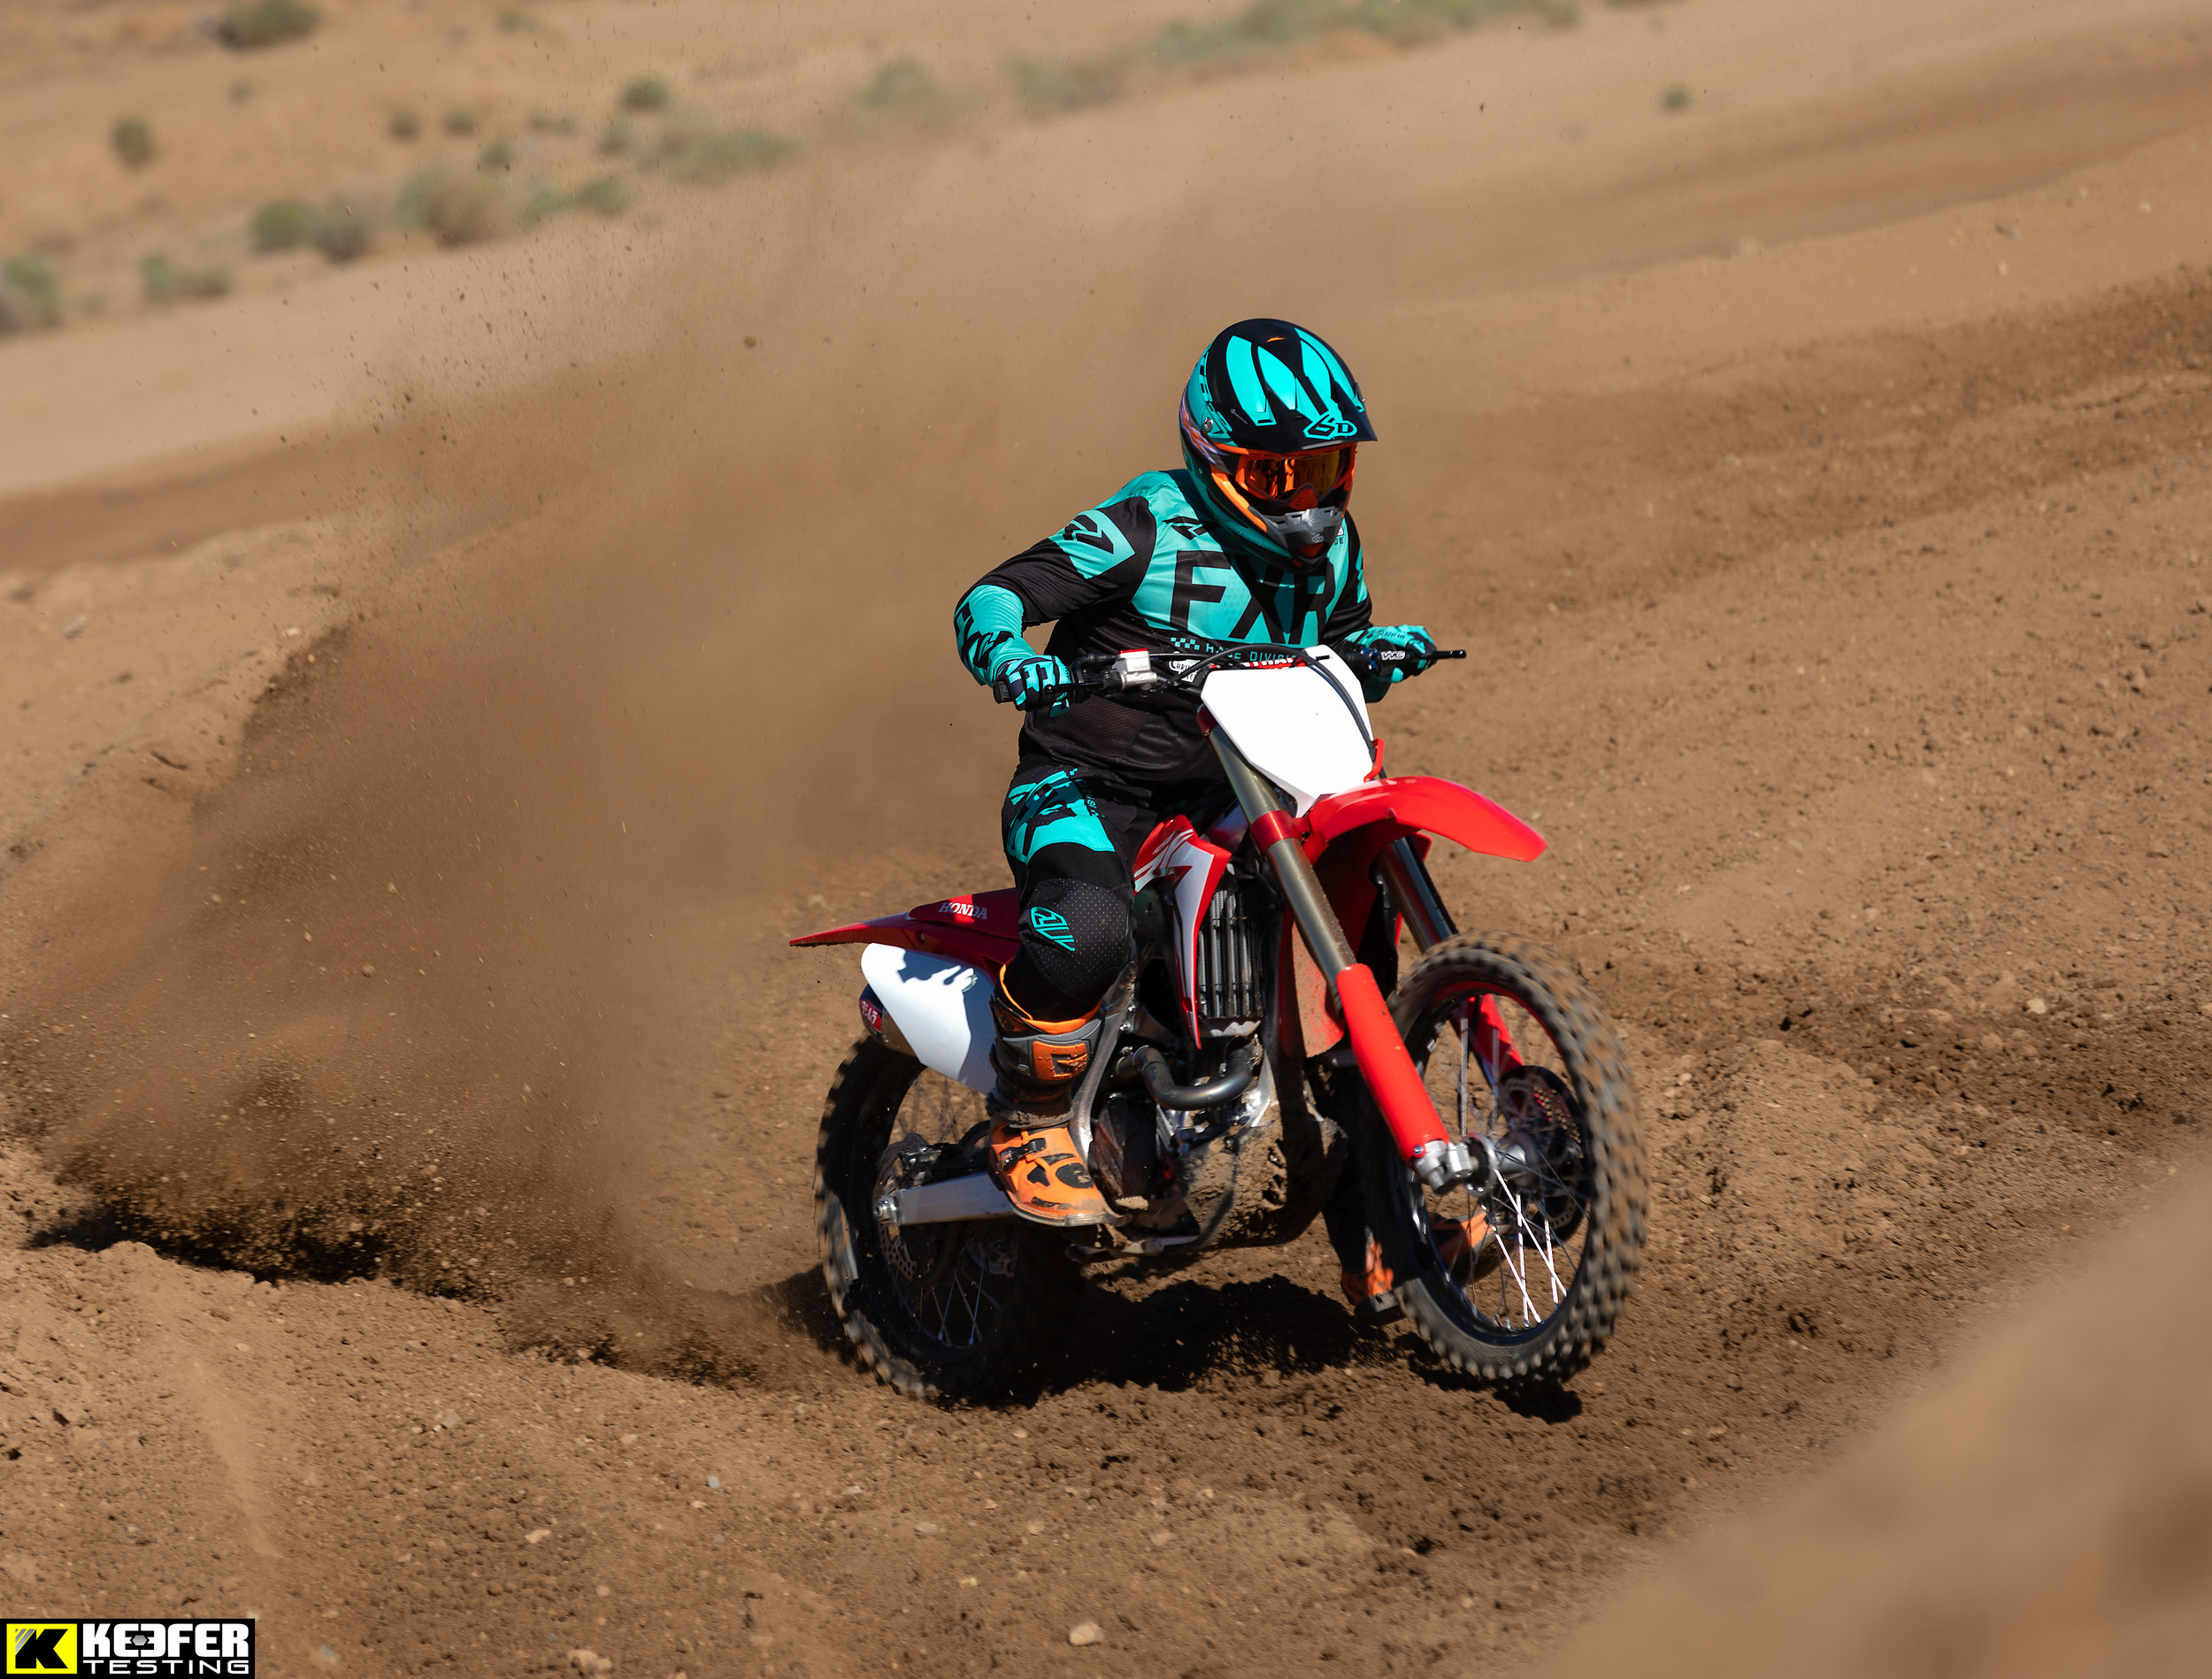 """Matt Sirevaag is your average dirt bike fanatic. He works overtime just so he can purchase extra """"goodies"""" for his 2019 Honda CRF450R. He is only """"allowed"""" (you married guys out there know what I am saying) to buy stuff for his bike if he makes extra cash. Matt works side jobs and puts in OT just so he can get his bike just the way he likes it. To me this is a real world test because of the test rider that has written it.    -KK"""